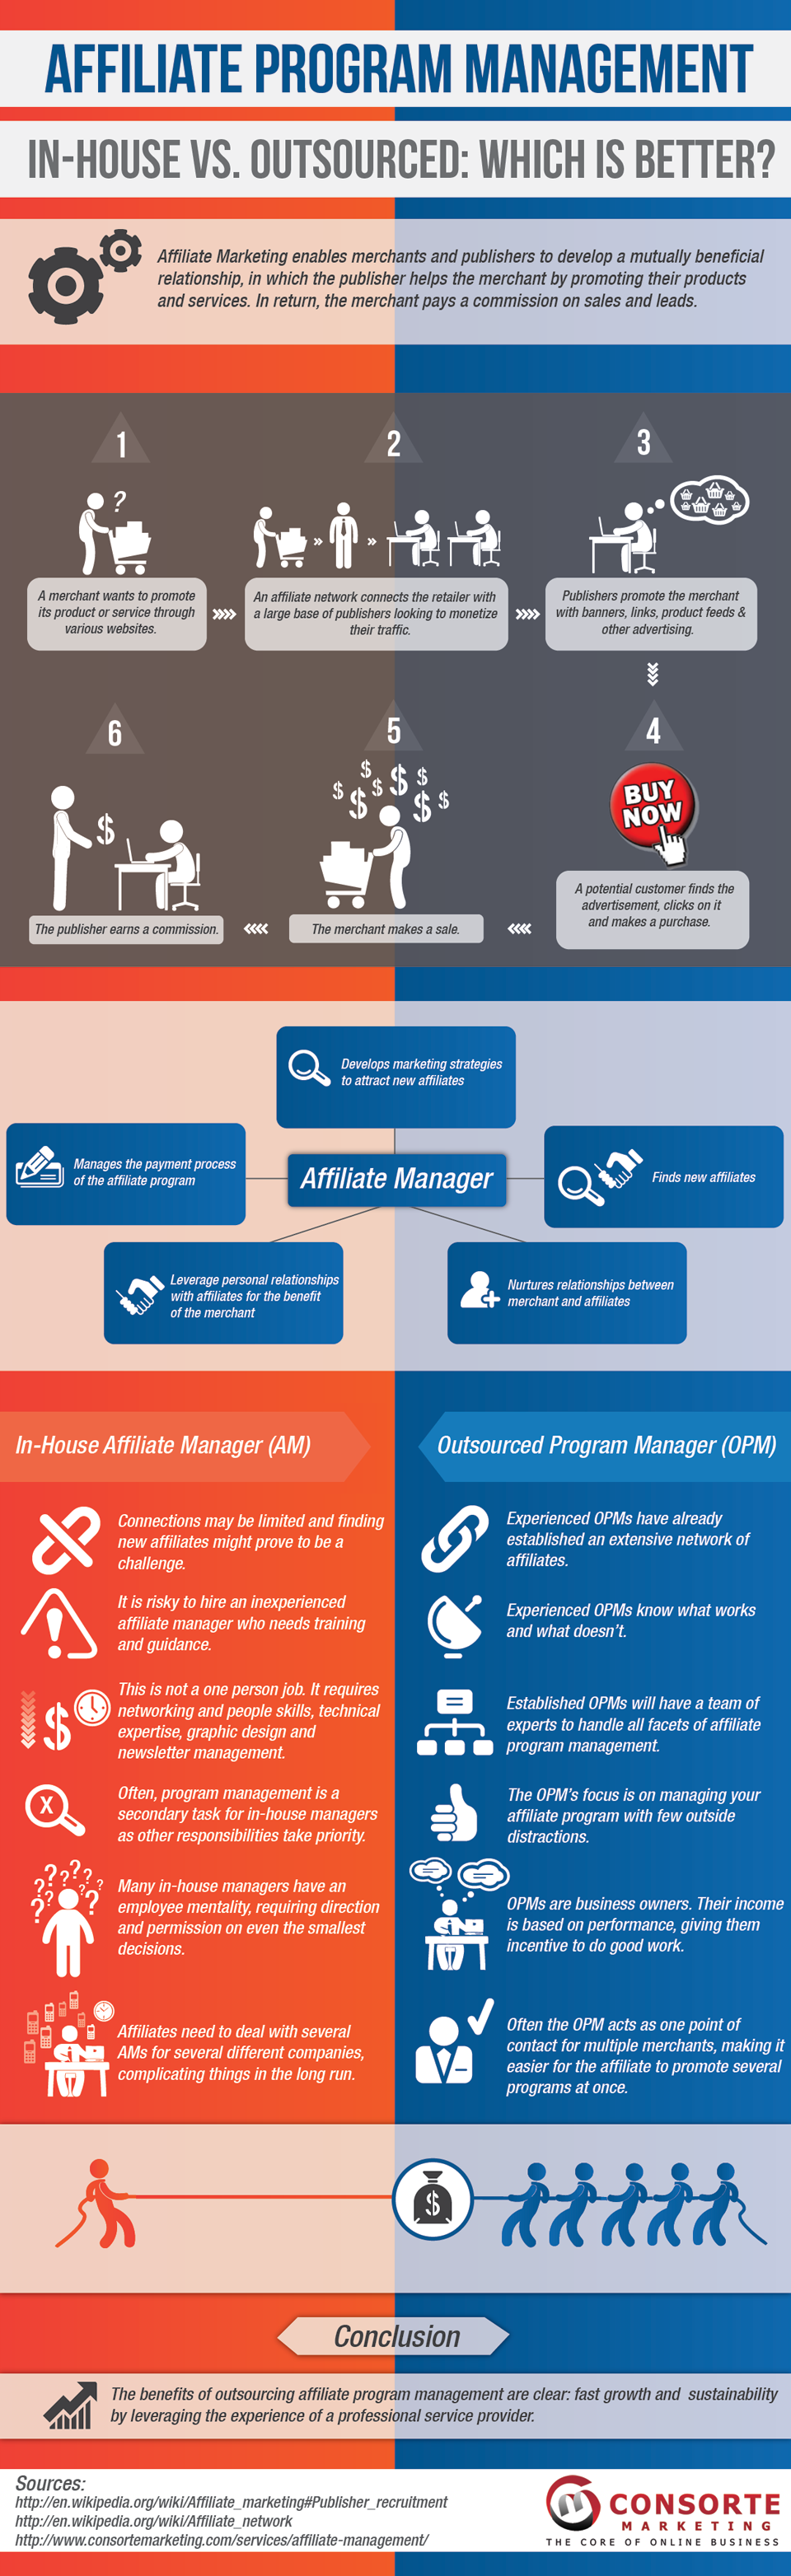 infographic in house vs outsourced affiliate program management via consorte marketing